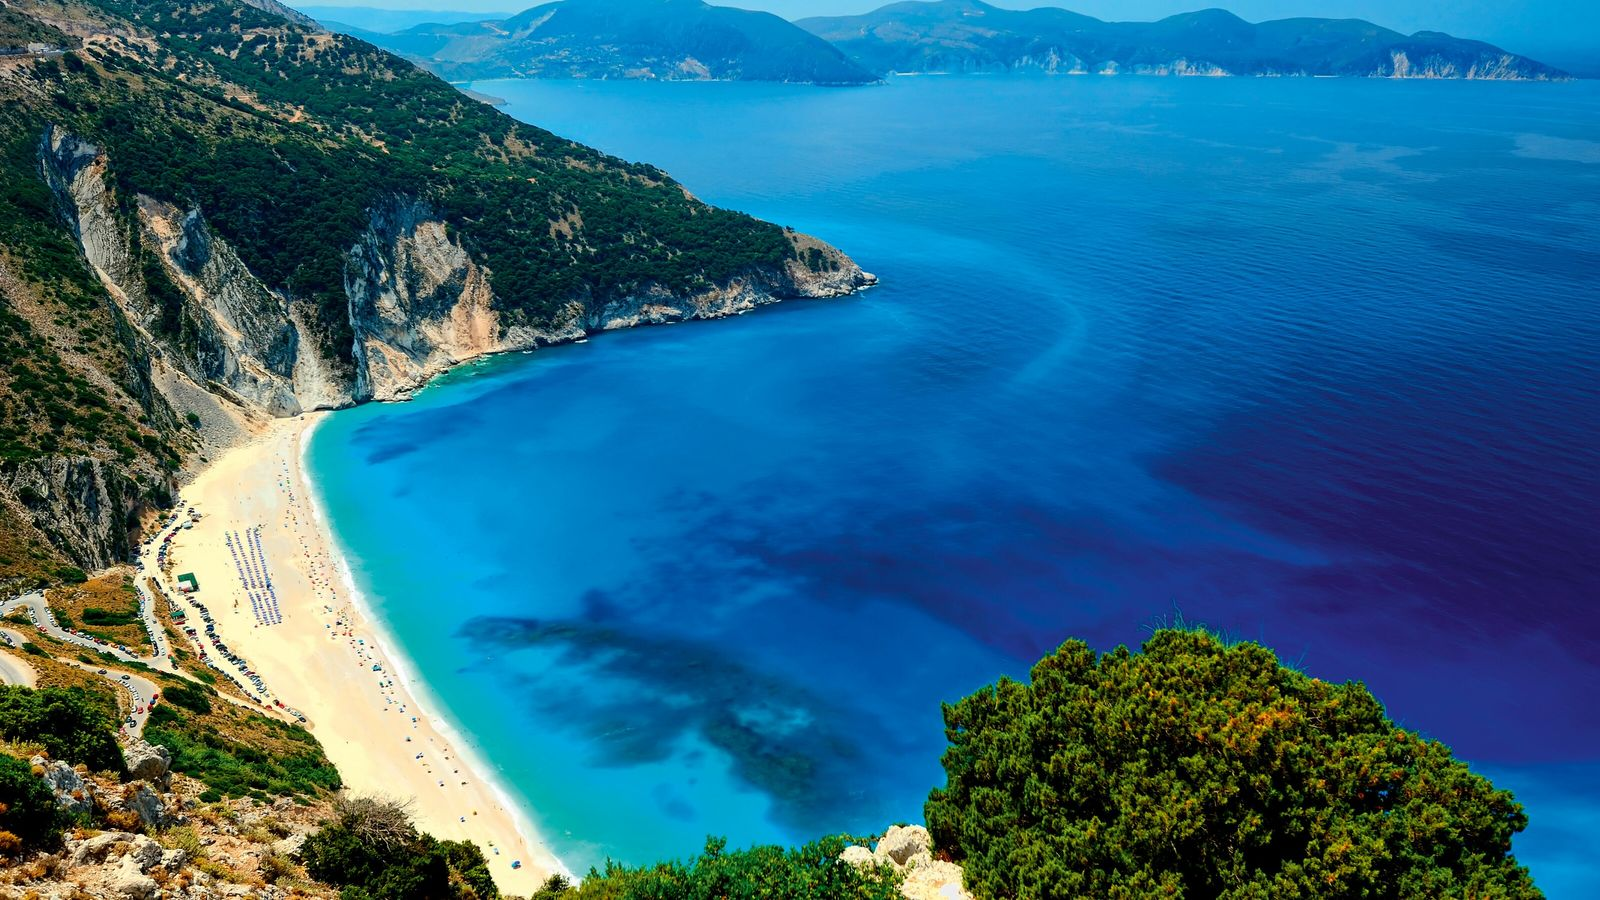 The largest of the Ionian islands, Kefalonia is home to the beautiful Myrtos beach.